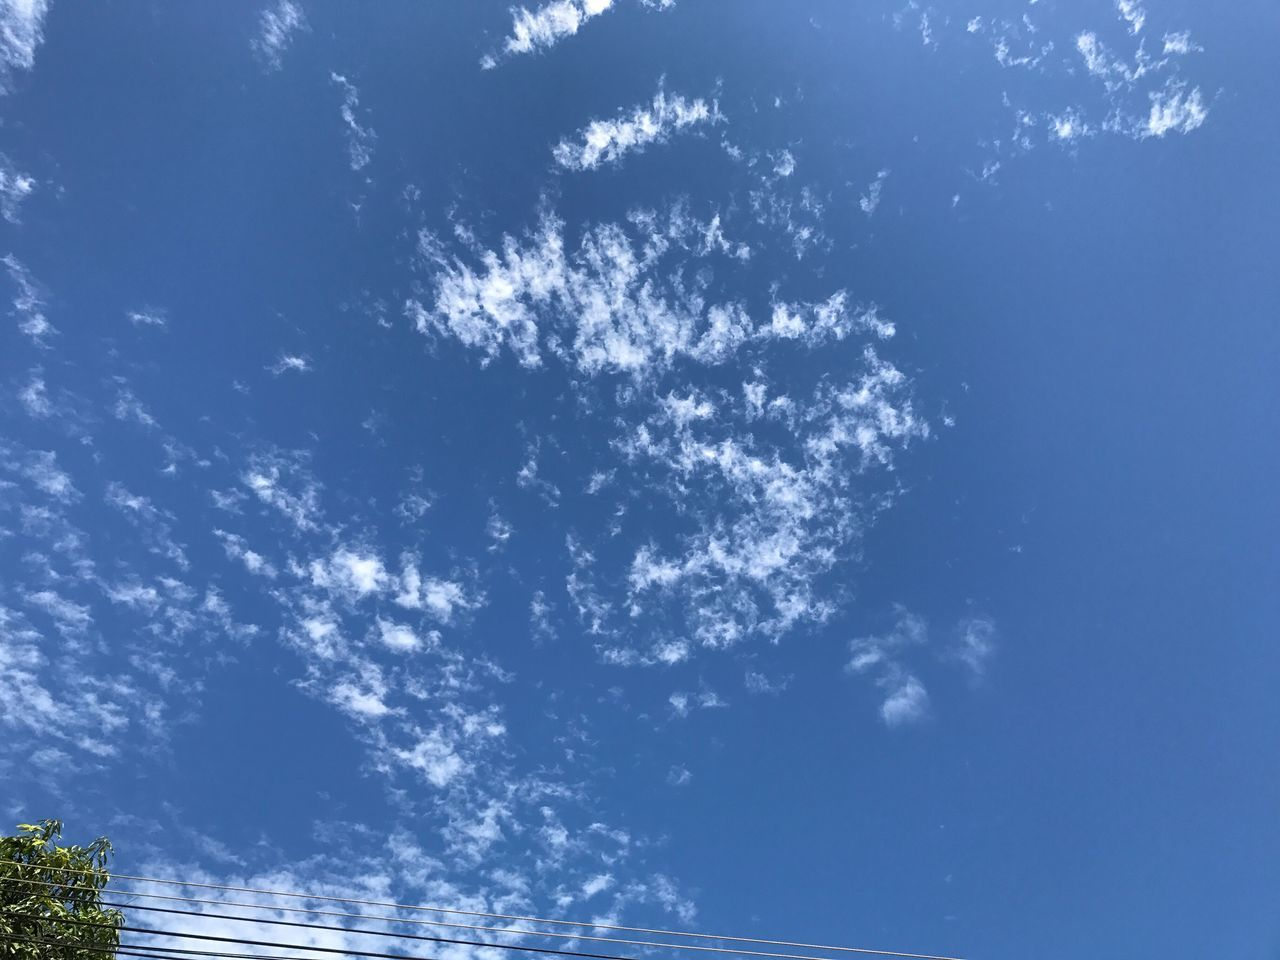 low angle view, sky, blue, nature, beauty in nature, cloud - sky, day, no people, outdoors, scenics, tranquility, tree